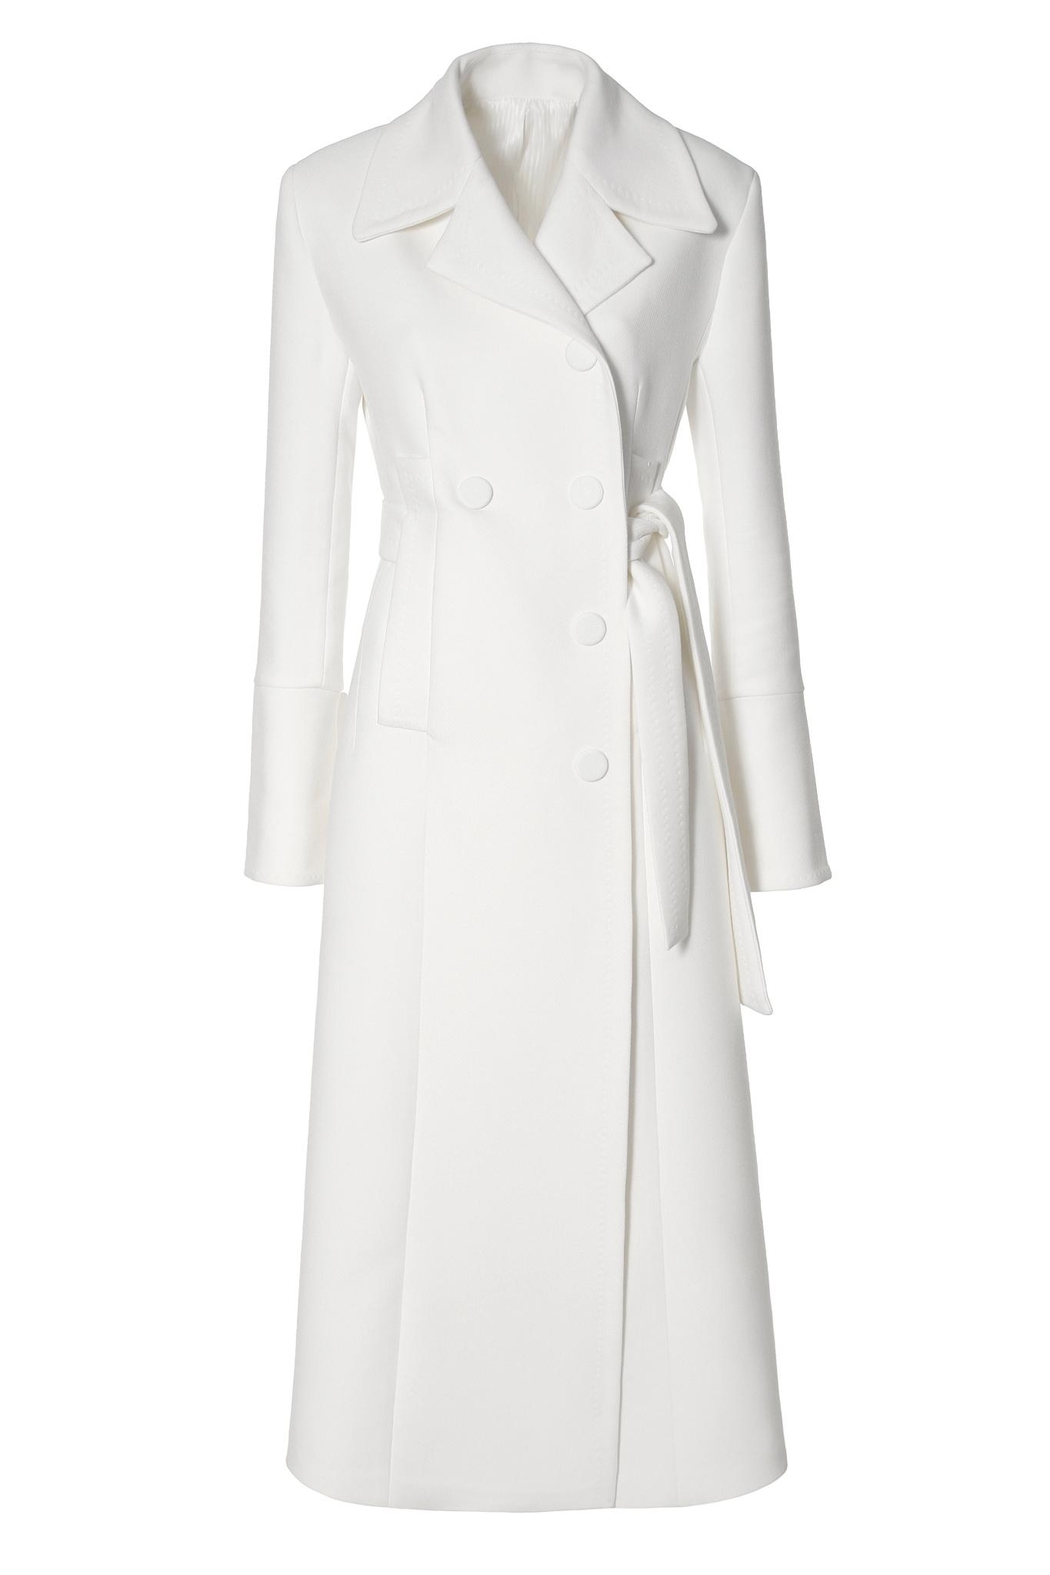 AGGI Coat Tilda Off-White - Front Full Image